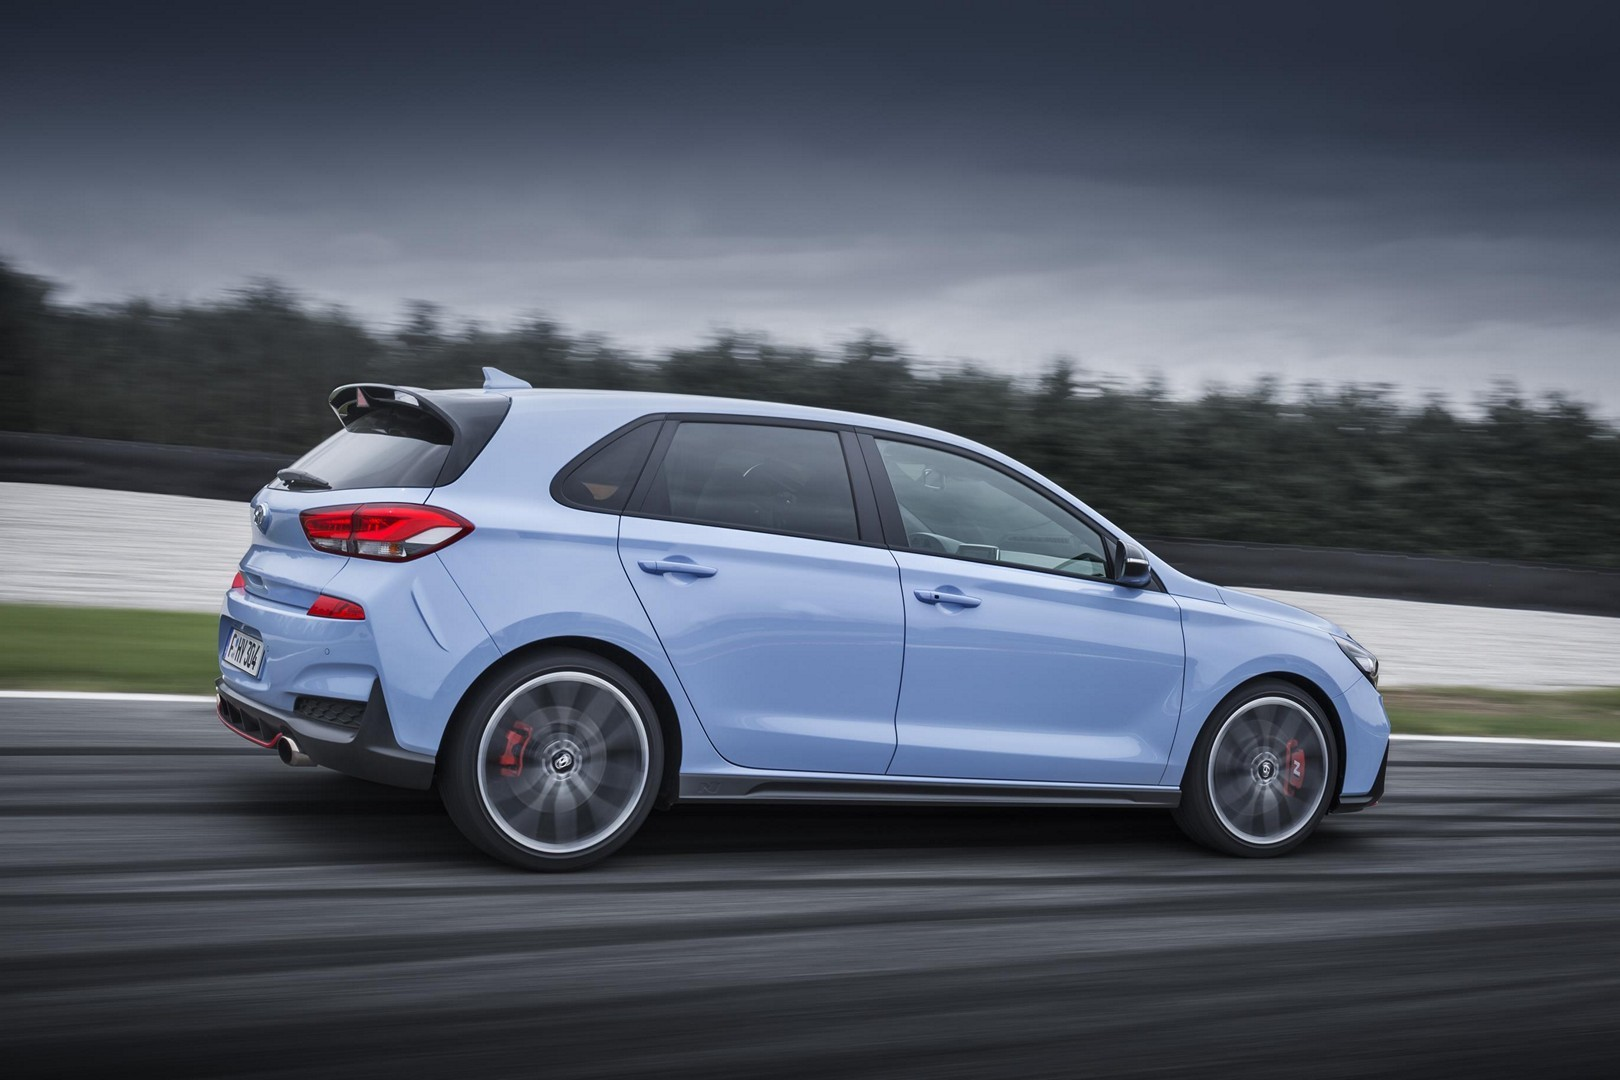 Hyundai Elantra For Sale >> Hyundai i30 N DCT Coming In 2019 With Eight Speeds - autoevolution